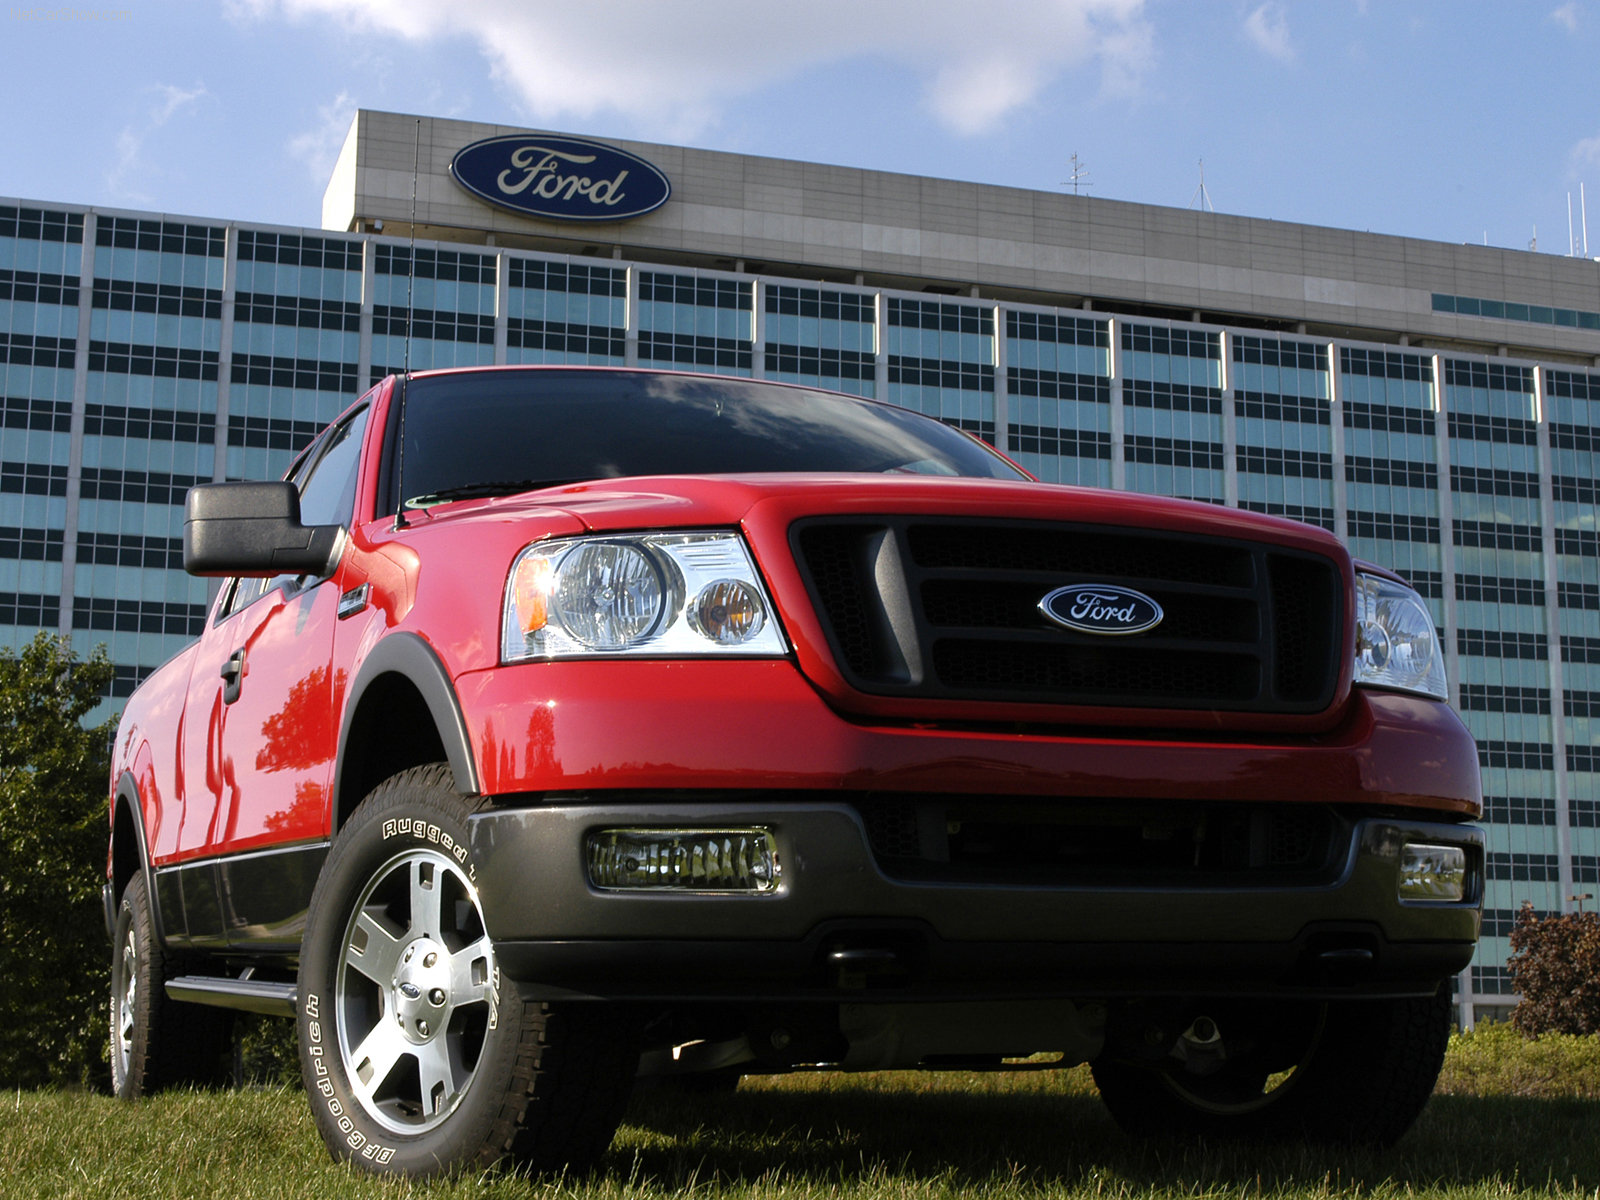 Tuning Ford F-150 Extended Cab 2006 online, accessories ...